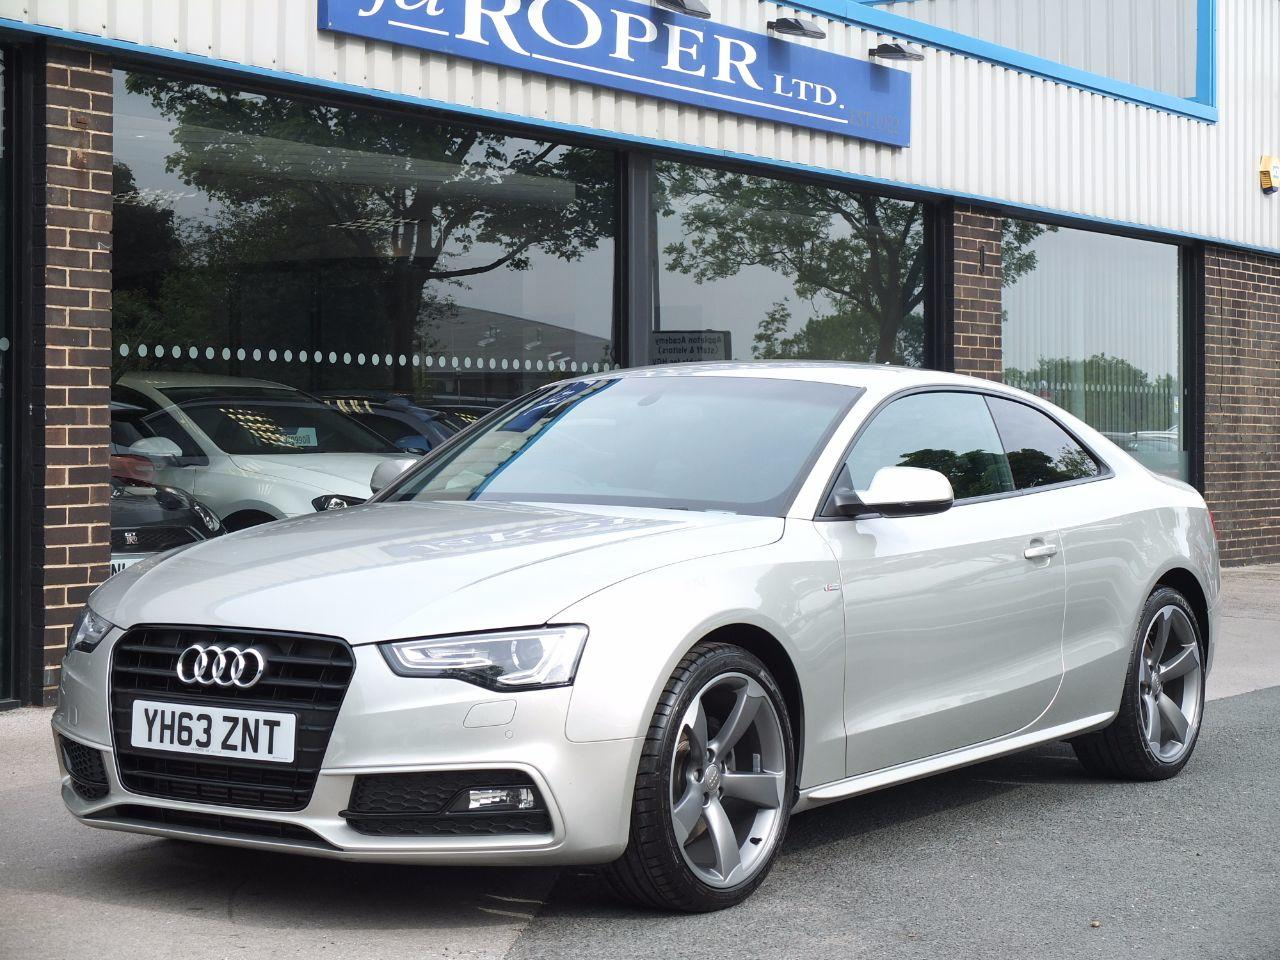 Audi A5 2.0 TDI 177 ps Black Edition Coupe Multitronic +++Spec Coupe Diesel Cuvee Silver MetallicAudi A5 2.0 TDI 177 ps Black Edition Coupe Multitronic +++Spec Coupe Diesel Cuvee Silver Metallic at fa Roper Ltd Bradford